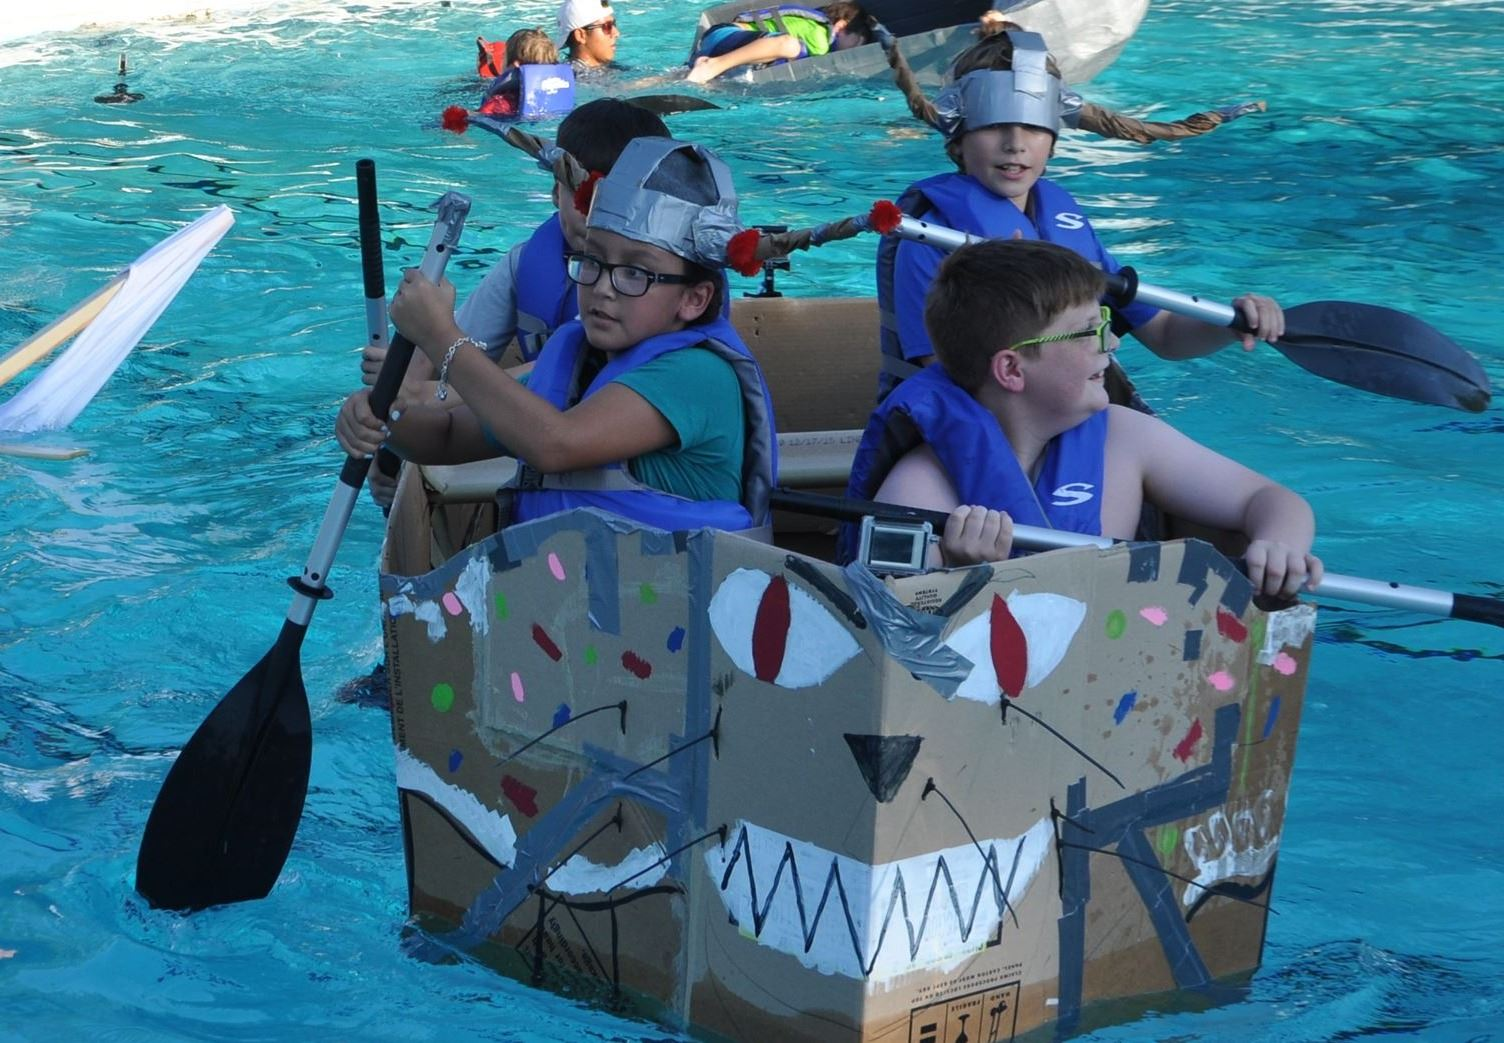 kids in cardboard boat